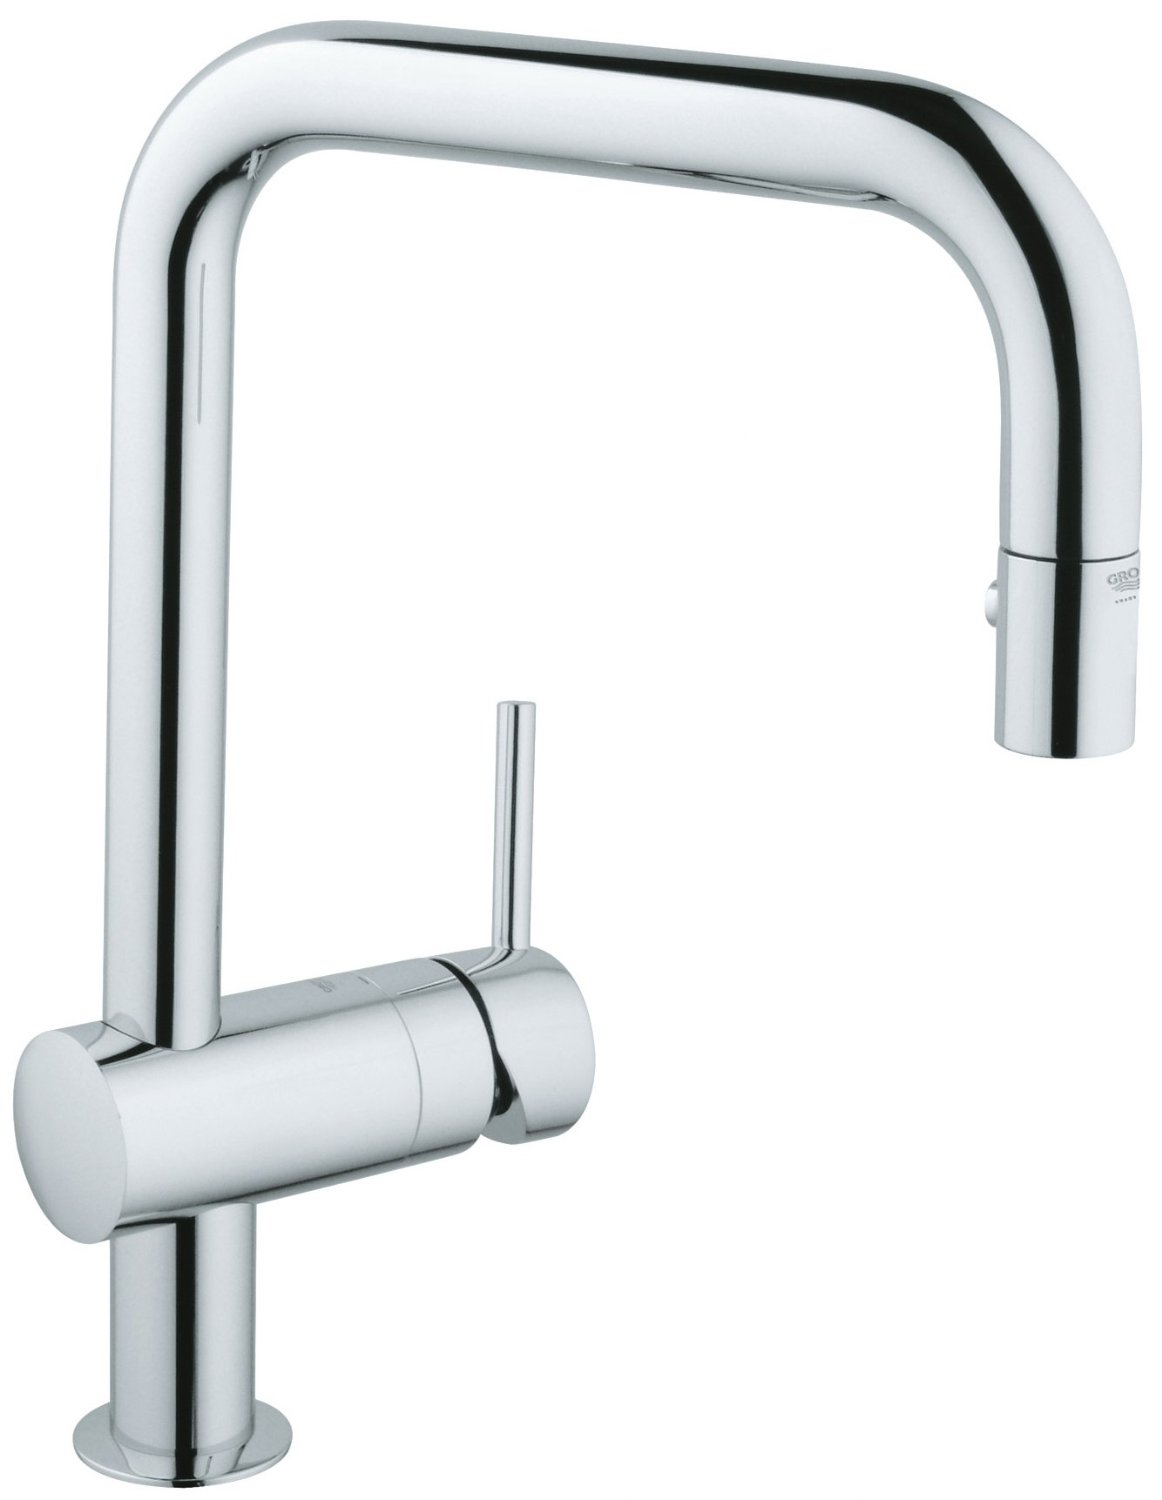 awesome 32319000 Minta Dual Spray Pull Down Kitchen Faucet by grohe faucets for kitchen furniture ideas